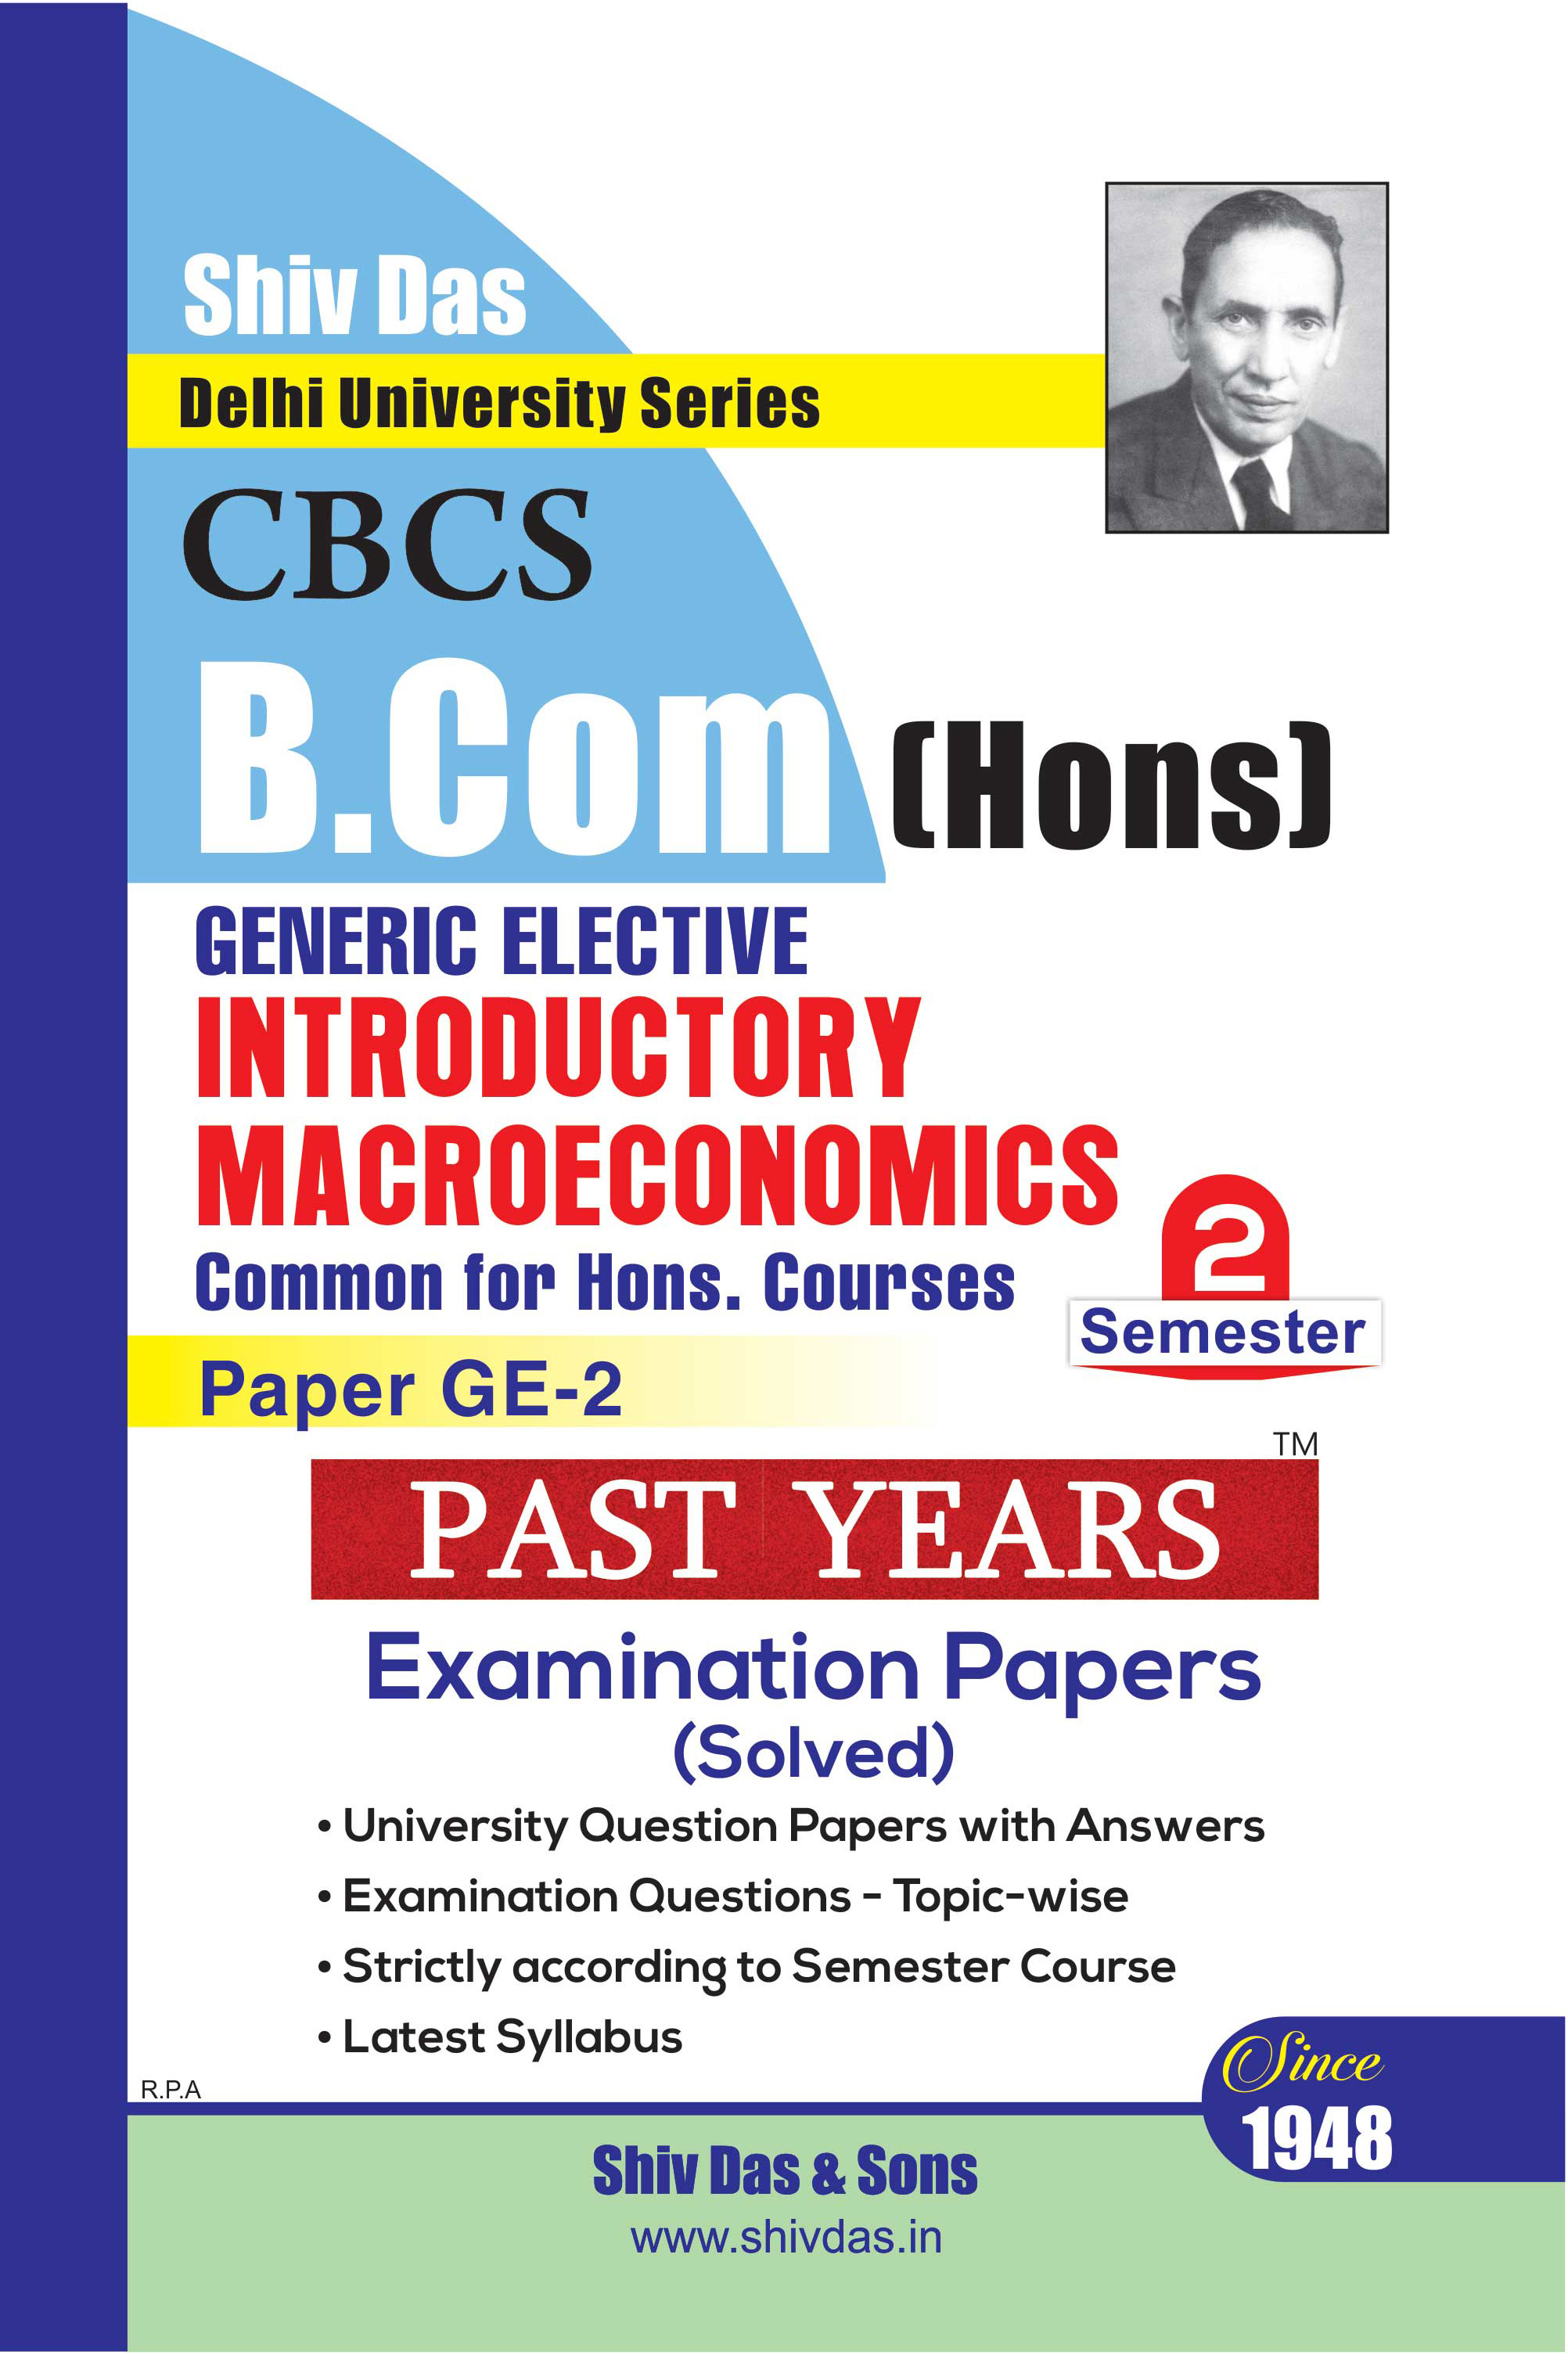 Introductory Macroeconomics for B.Com Hons Semester - 2